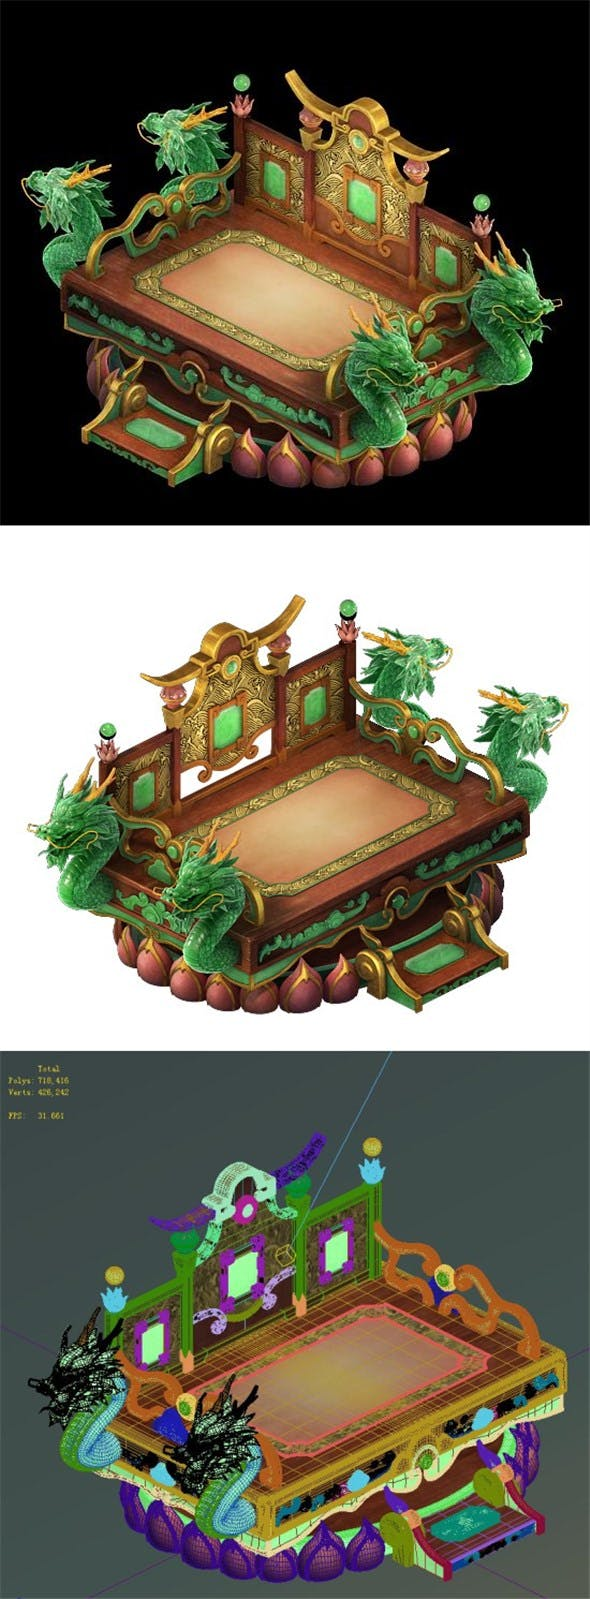 Game Model - Family Objects - Beds 02 - 3DOcean Item for Sale